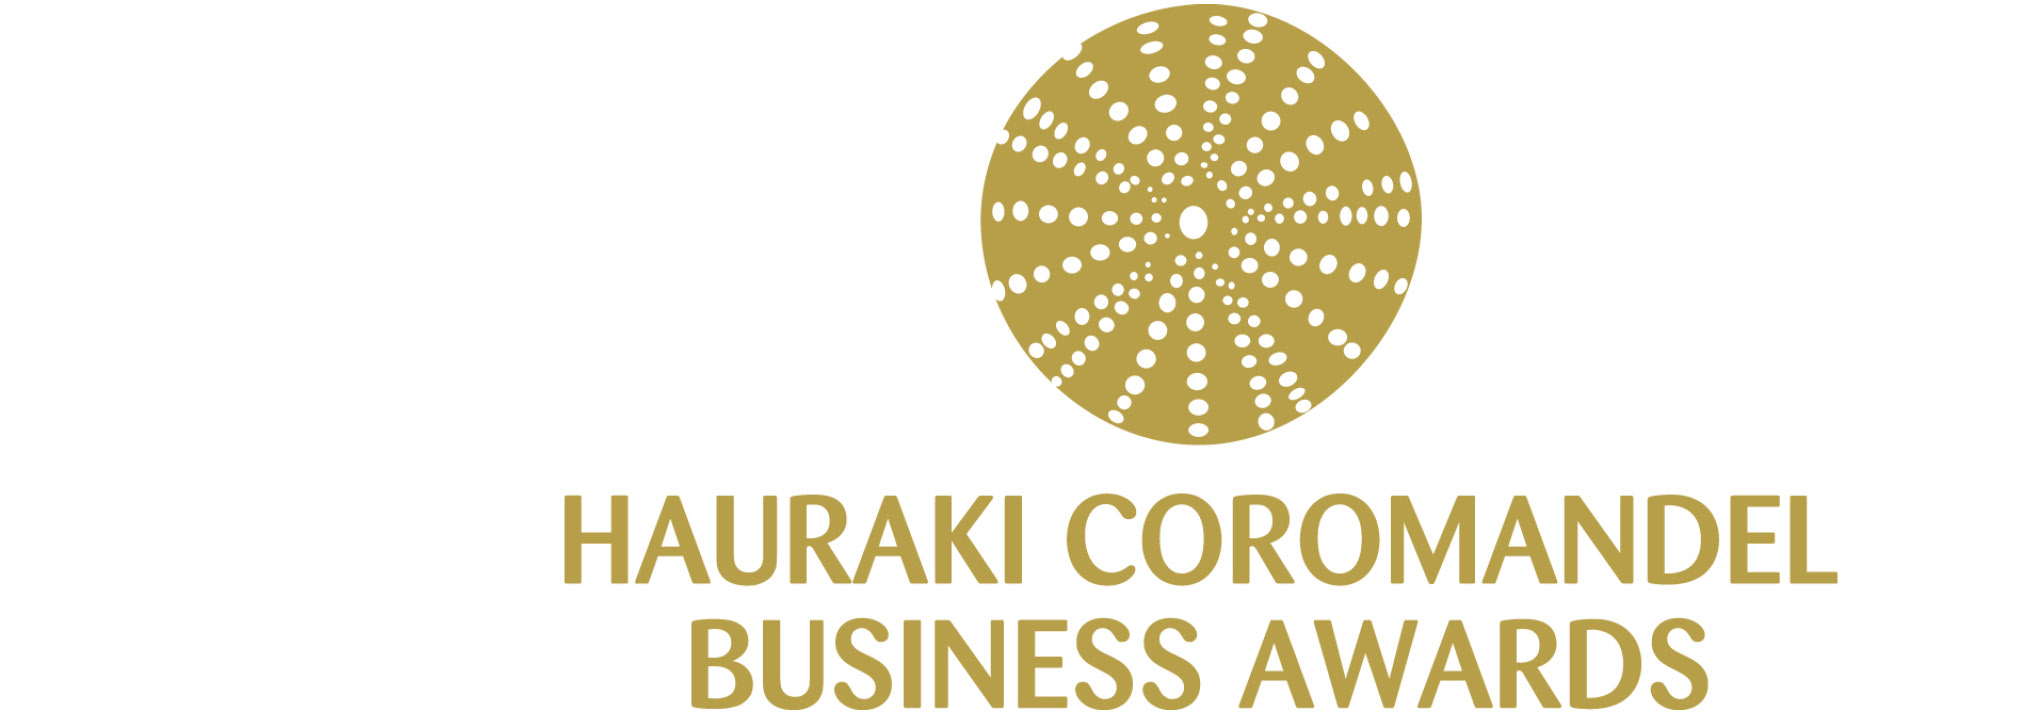 Hauraki Coromandel Business Awards